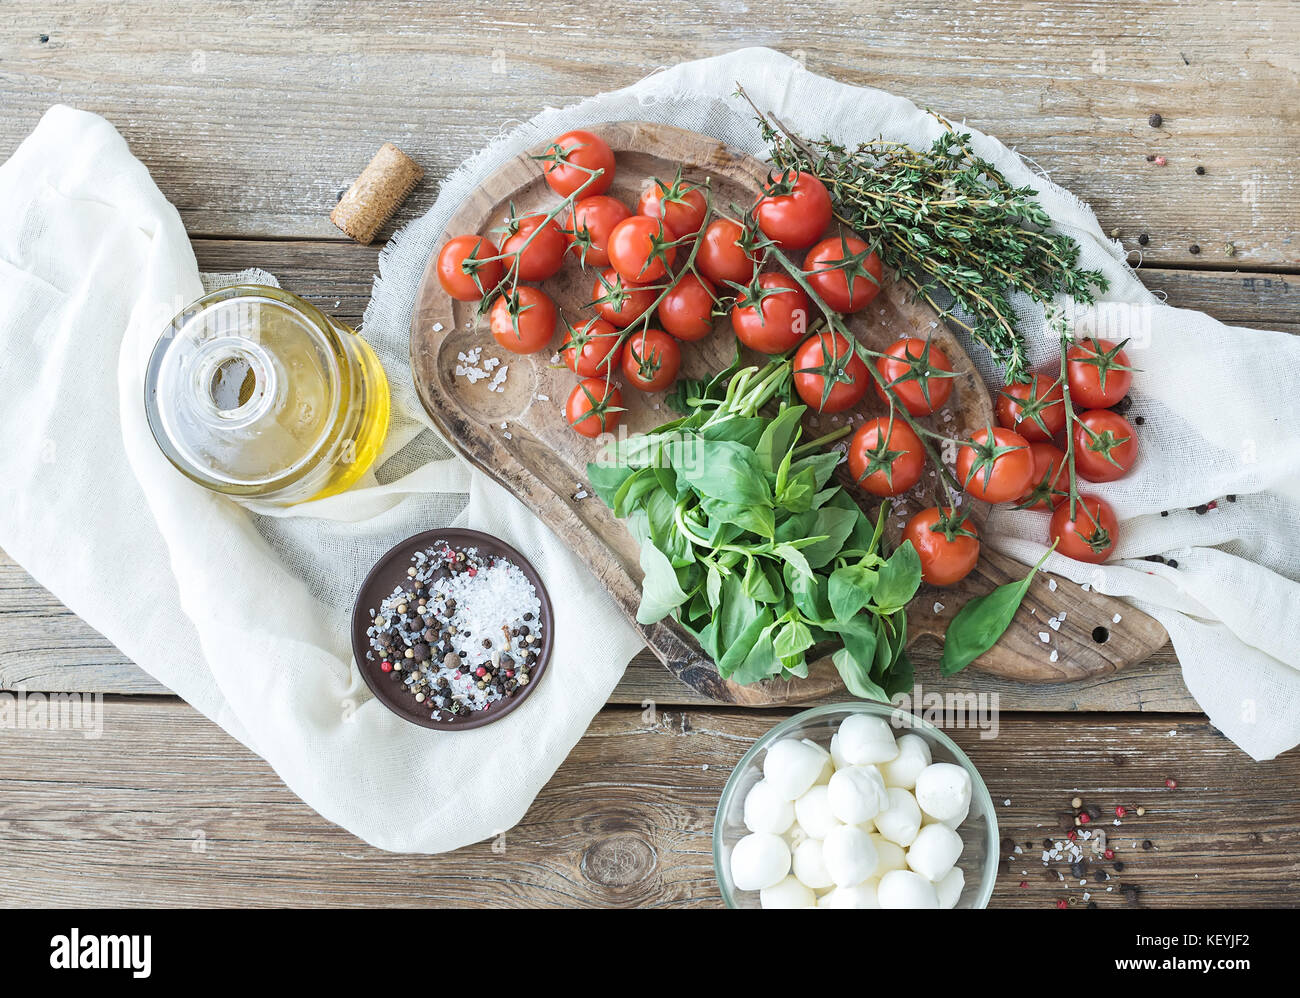 Basil, cherry-tomatoes, mozarella, olive oil, salt, spices on rustic chopping board - Stock Image